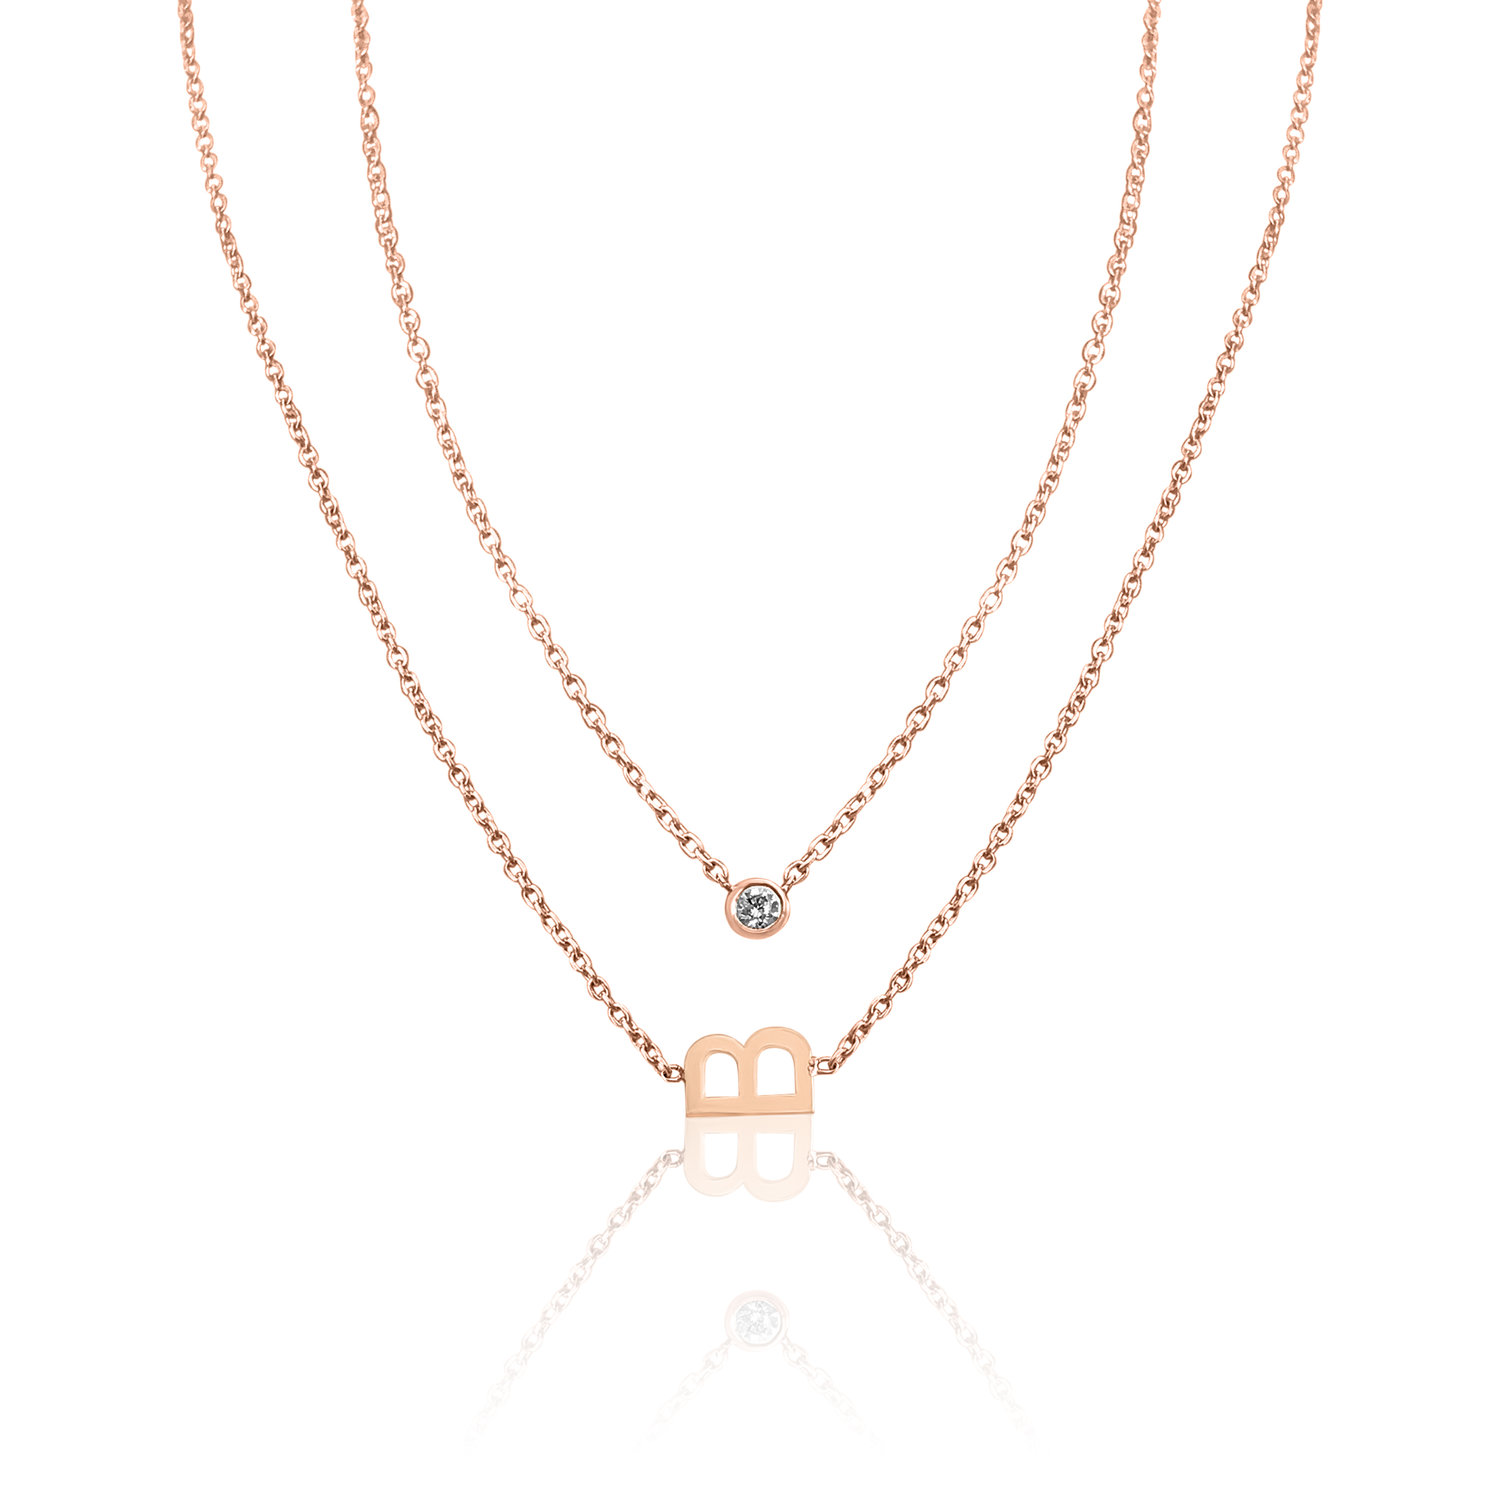 double layered golden layer buy online necklace kacyworld product necklaces